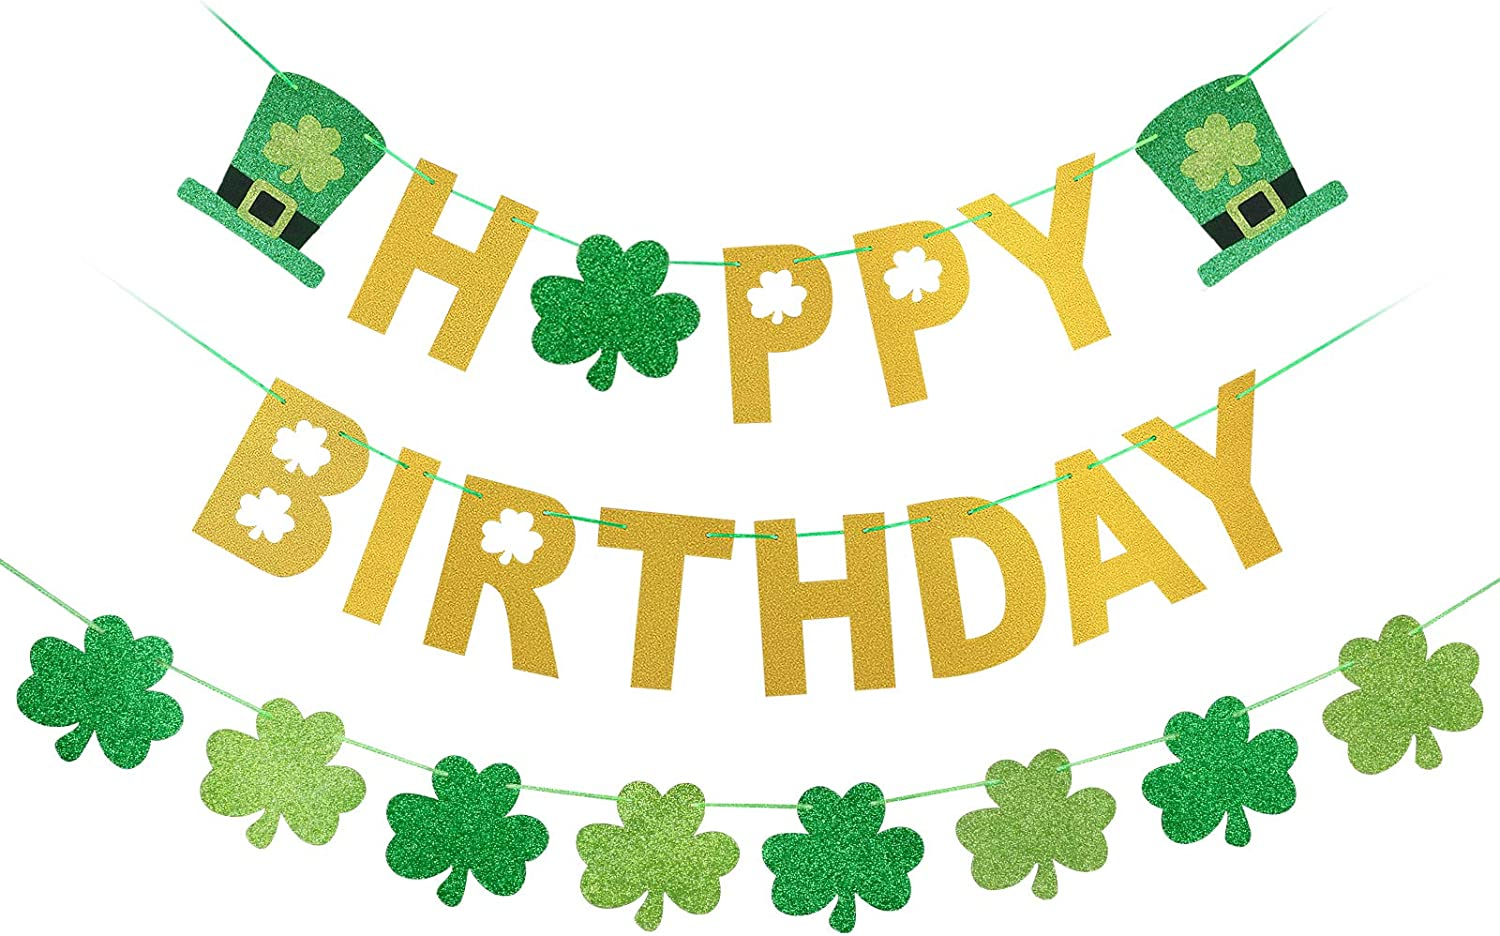 St Patrick S Day Happy Birthday Banner Shamrock Clover Banner For St Patricks Day Birthday Decorations St Patrick Decorations Irish Party Home Outdoor Supplies Decor Gold And Green Glittery Walmart Com